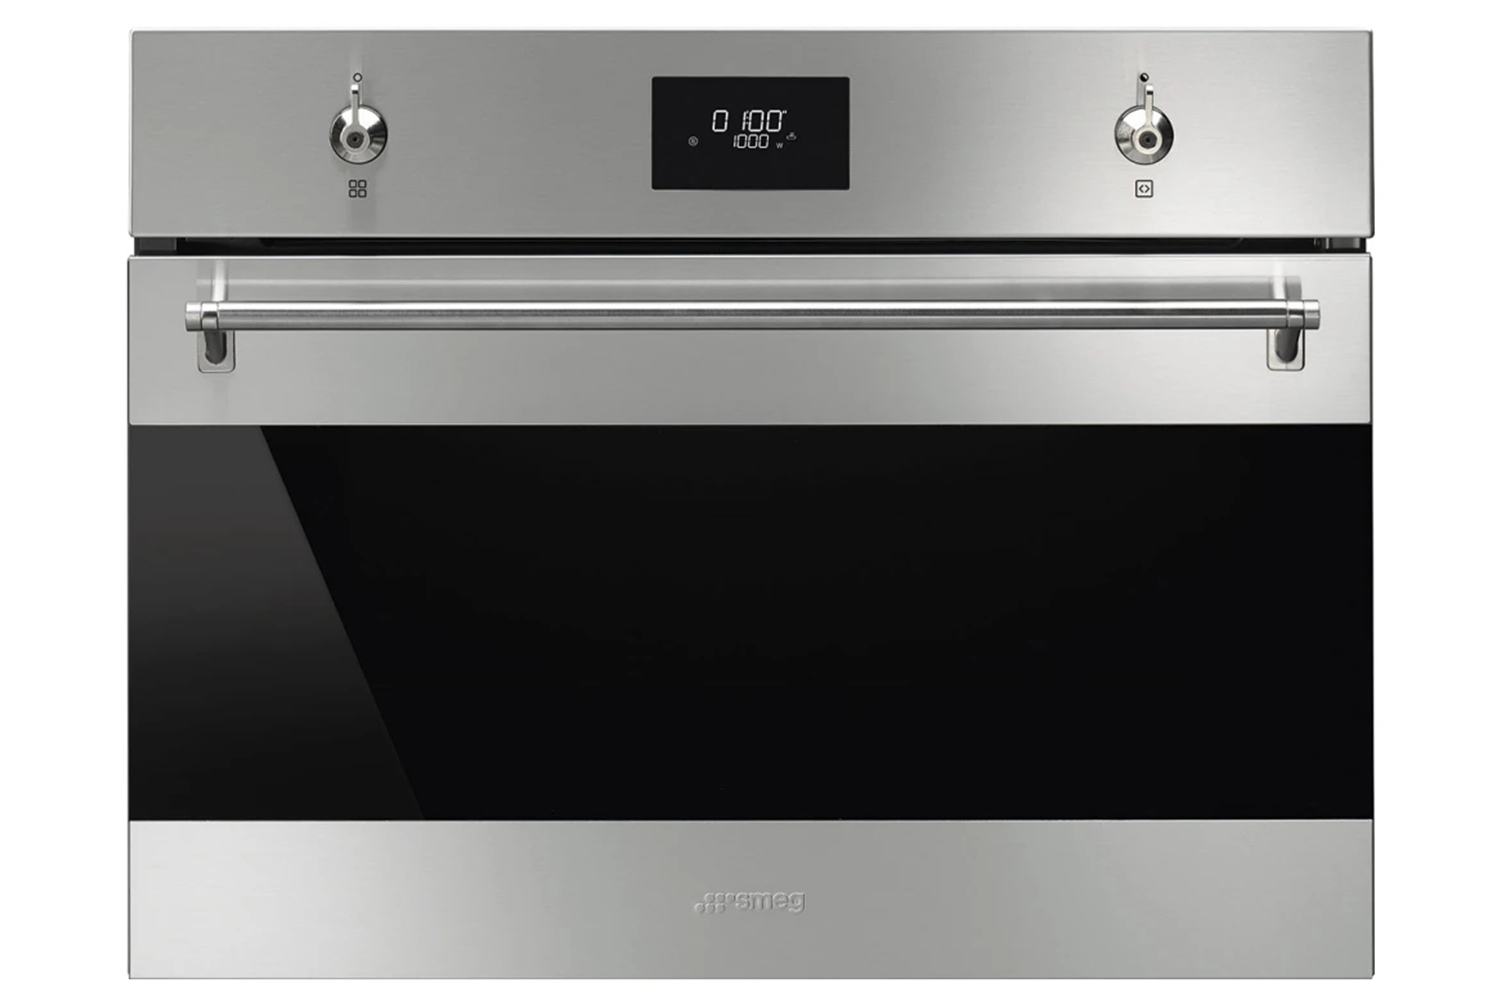 smeg 40l 1000w built in combination microwave oven sf4301mcx stainless steel